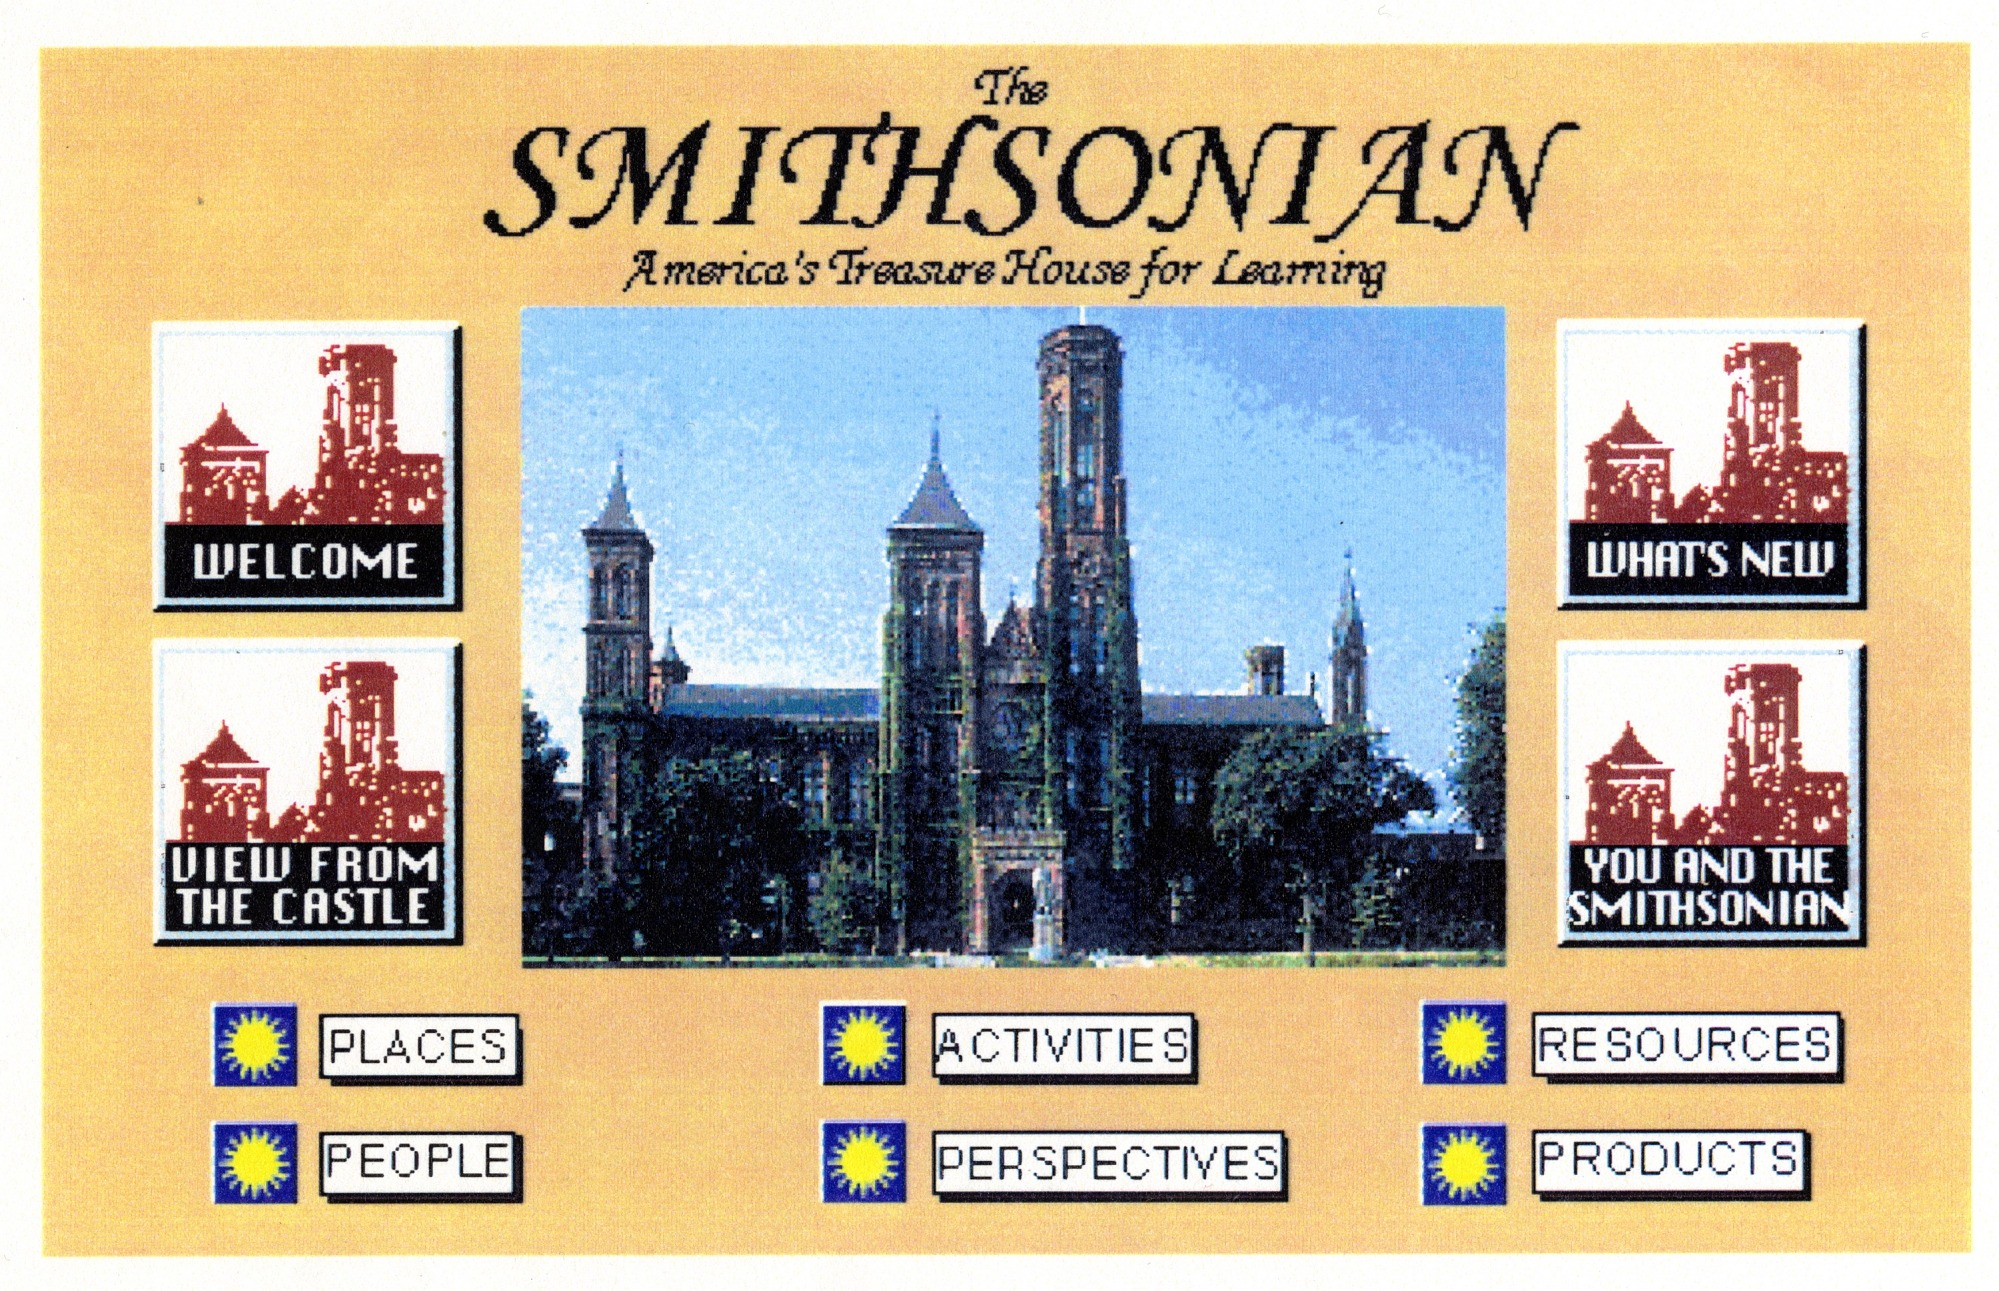 Smithsonian Web Site Goes Up, May 8, 1995, Smithsonian Archives - History Div.